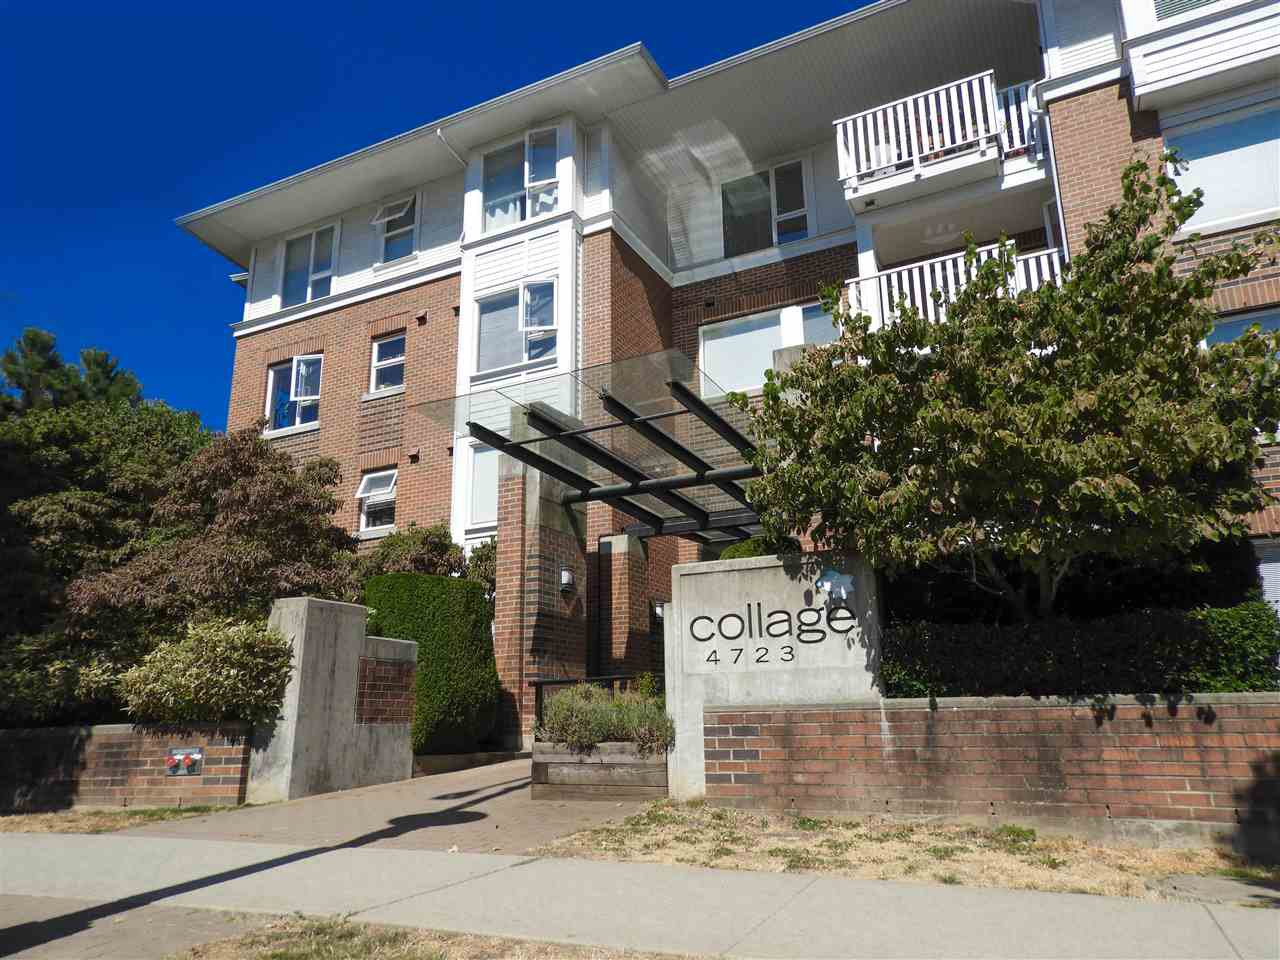 "Main Photo: 308 4723 DAWSON Street in Burnaby: Brentwood Park Condo for sale in ""COLLAGE BY POLYGON"" (Burnaby North)  : MLS®# R2202842"